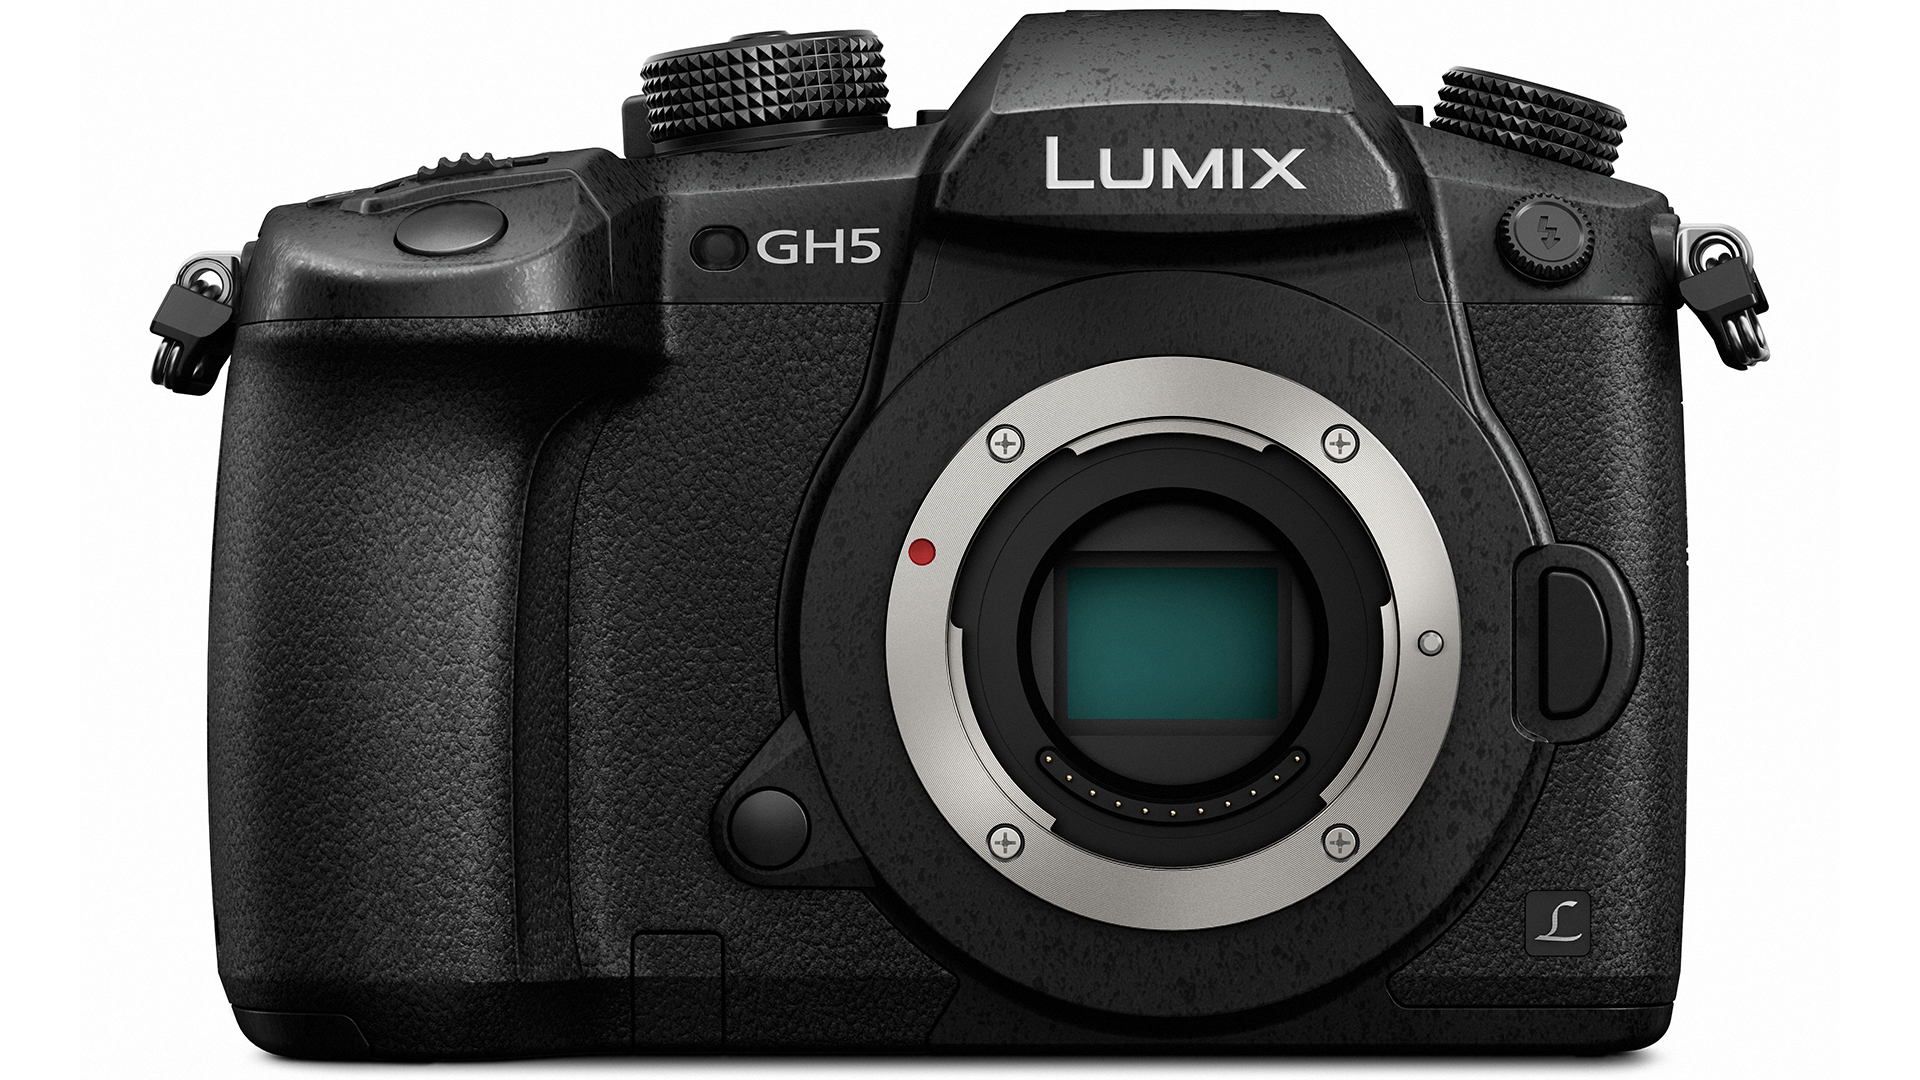 panasonic-lumix-dmc-gh5-002